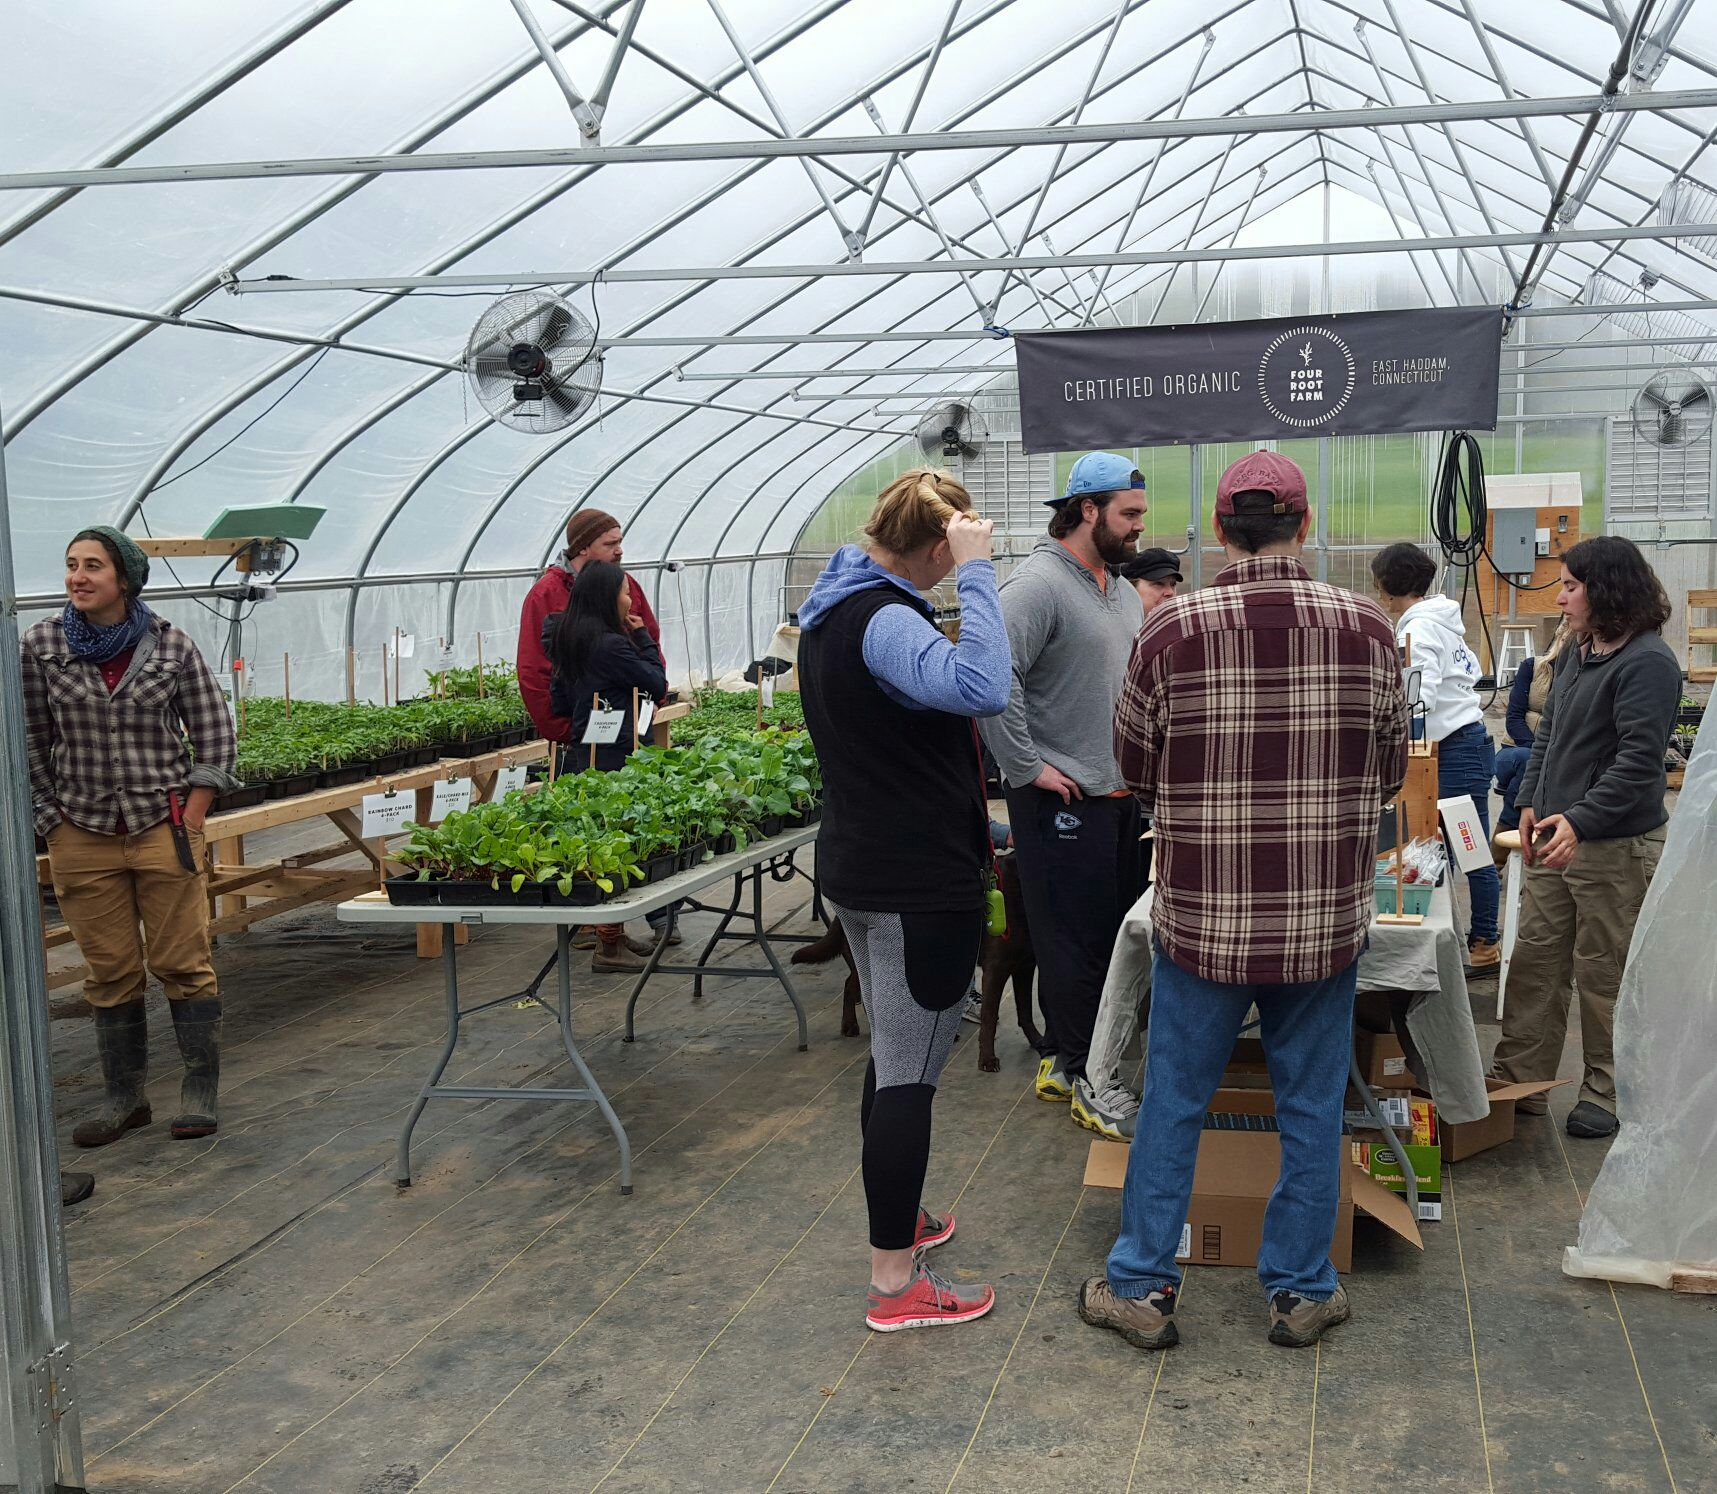 Last weekend's plant sale. Join us this Sunday for another round of delicious pizza and plenty of seedlings for your garden!